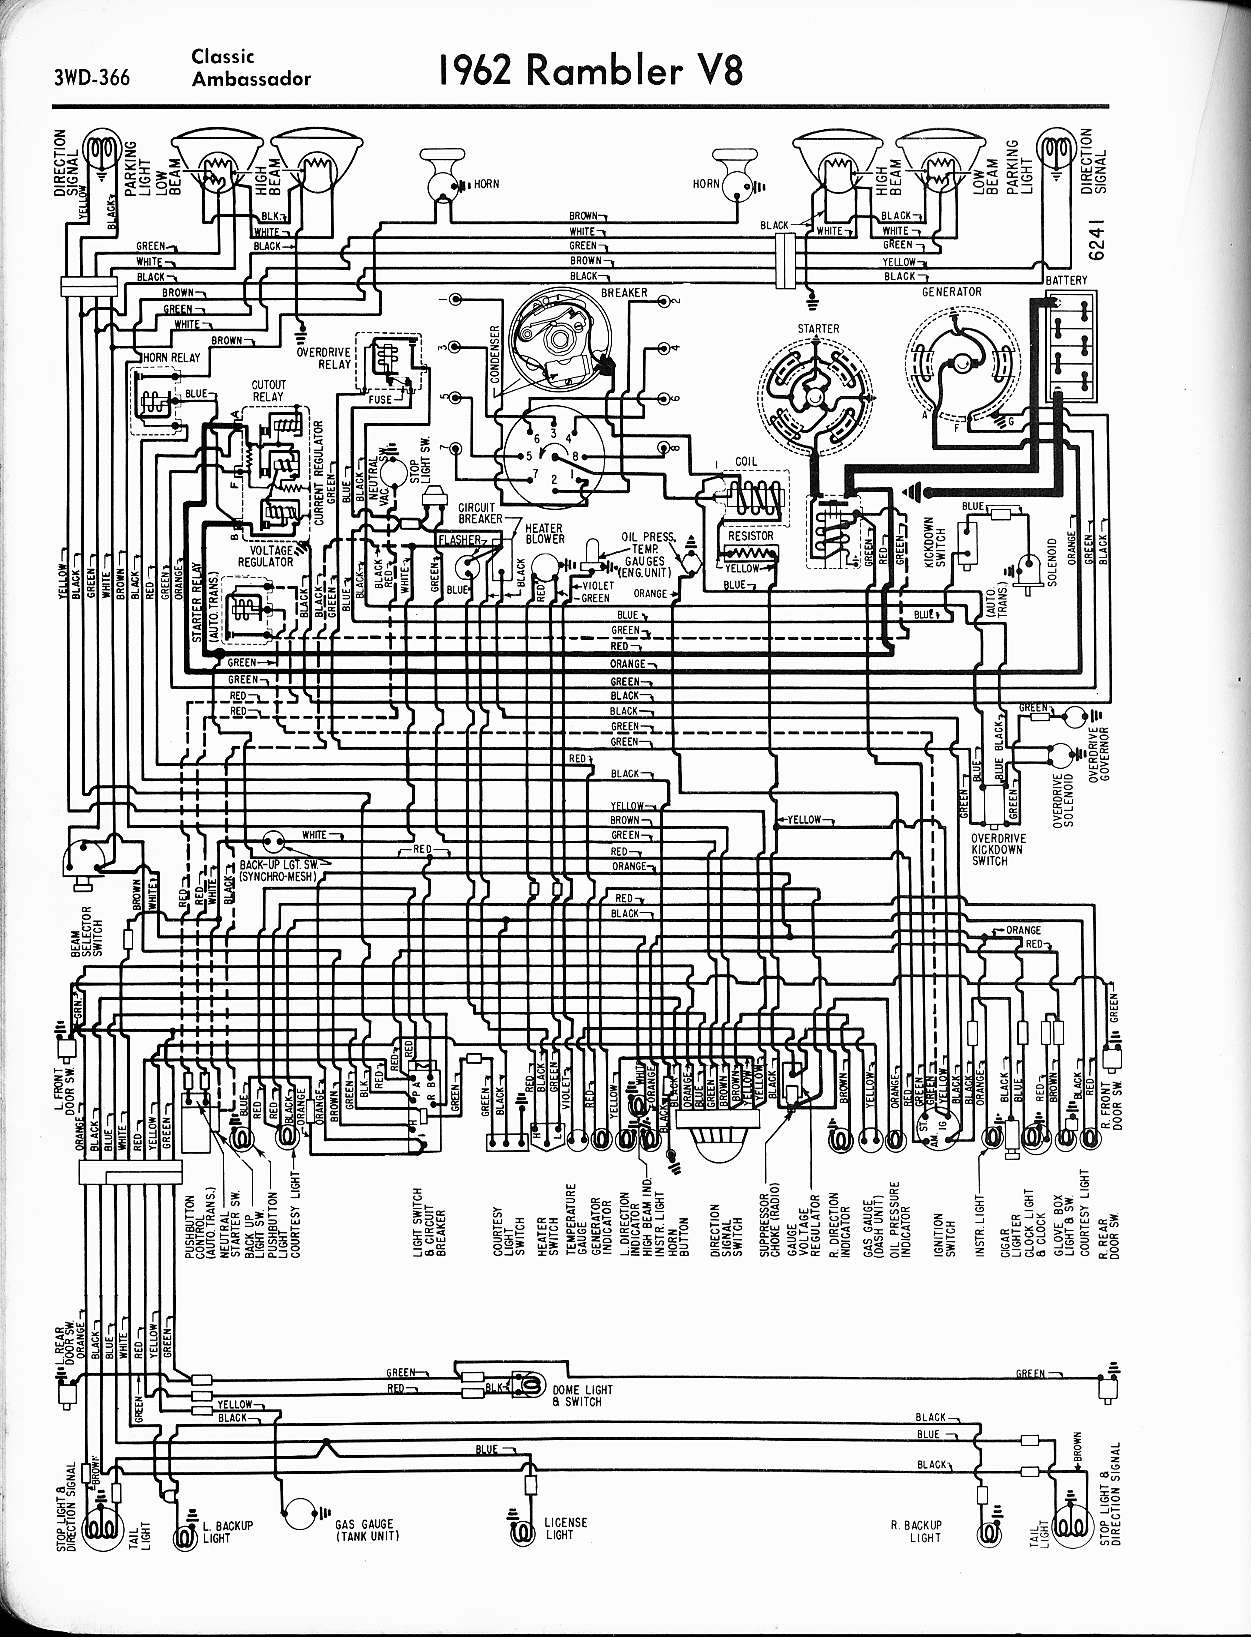 rambler wiring diagrams the old car manual project rh oldcarmanualproject com 1976 AMC 1969 amc javelin wiring diagram